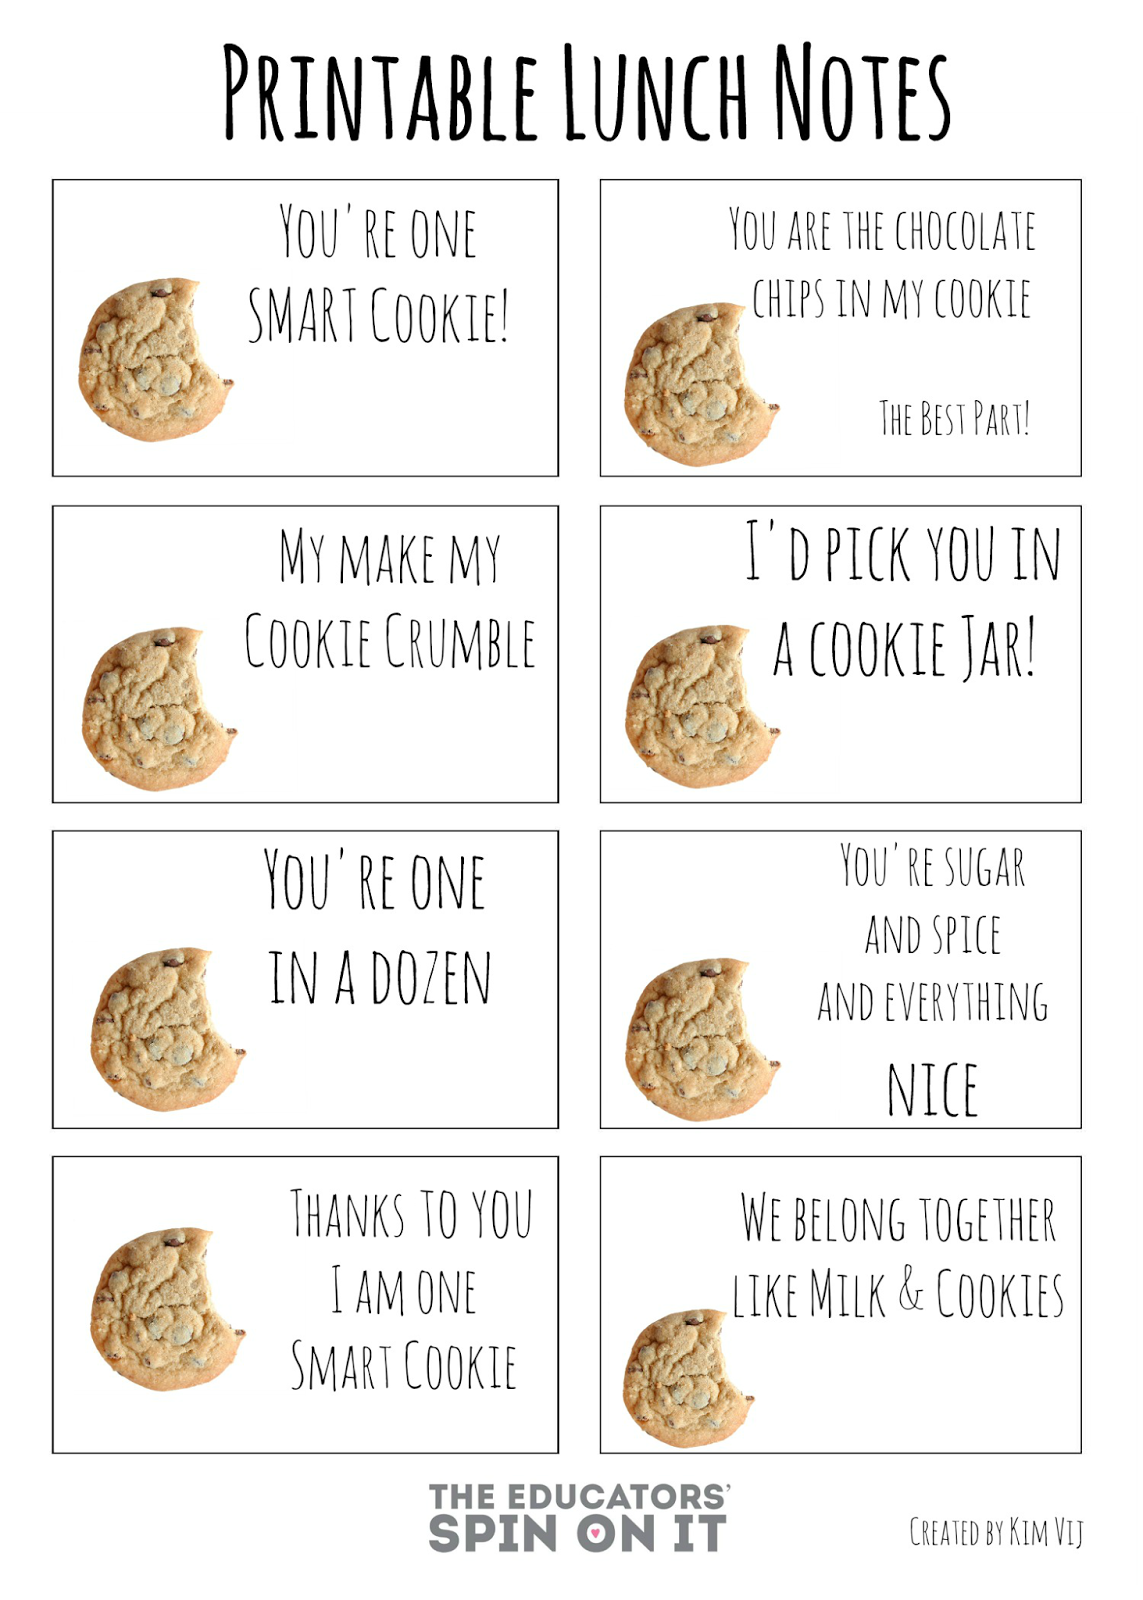 Out to Lunch Signs Printable Out to Lunch Signs Printable